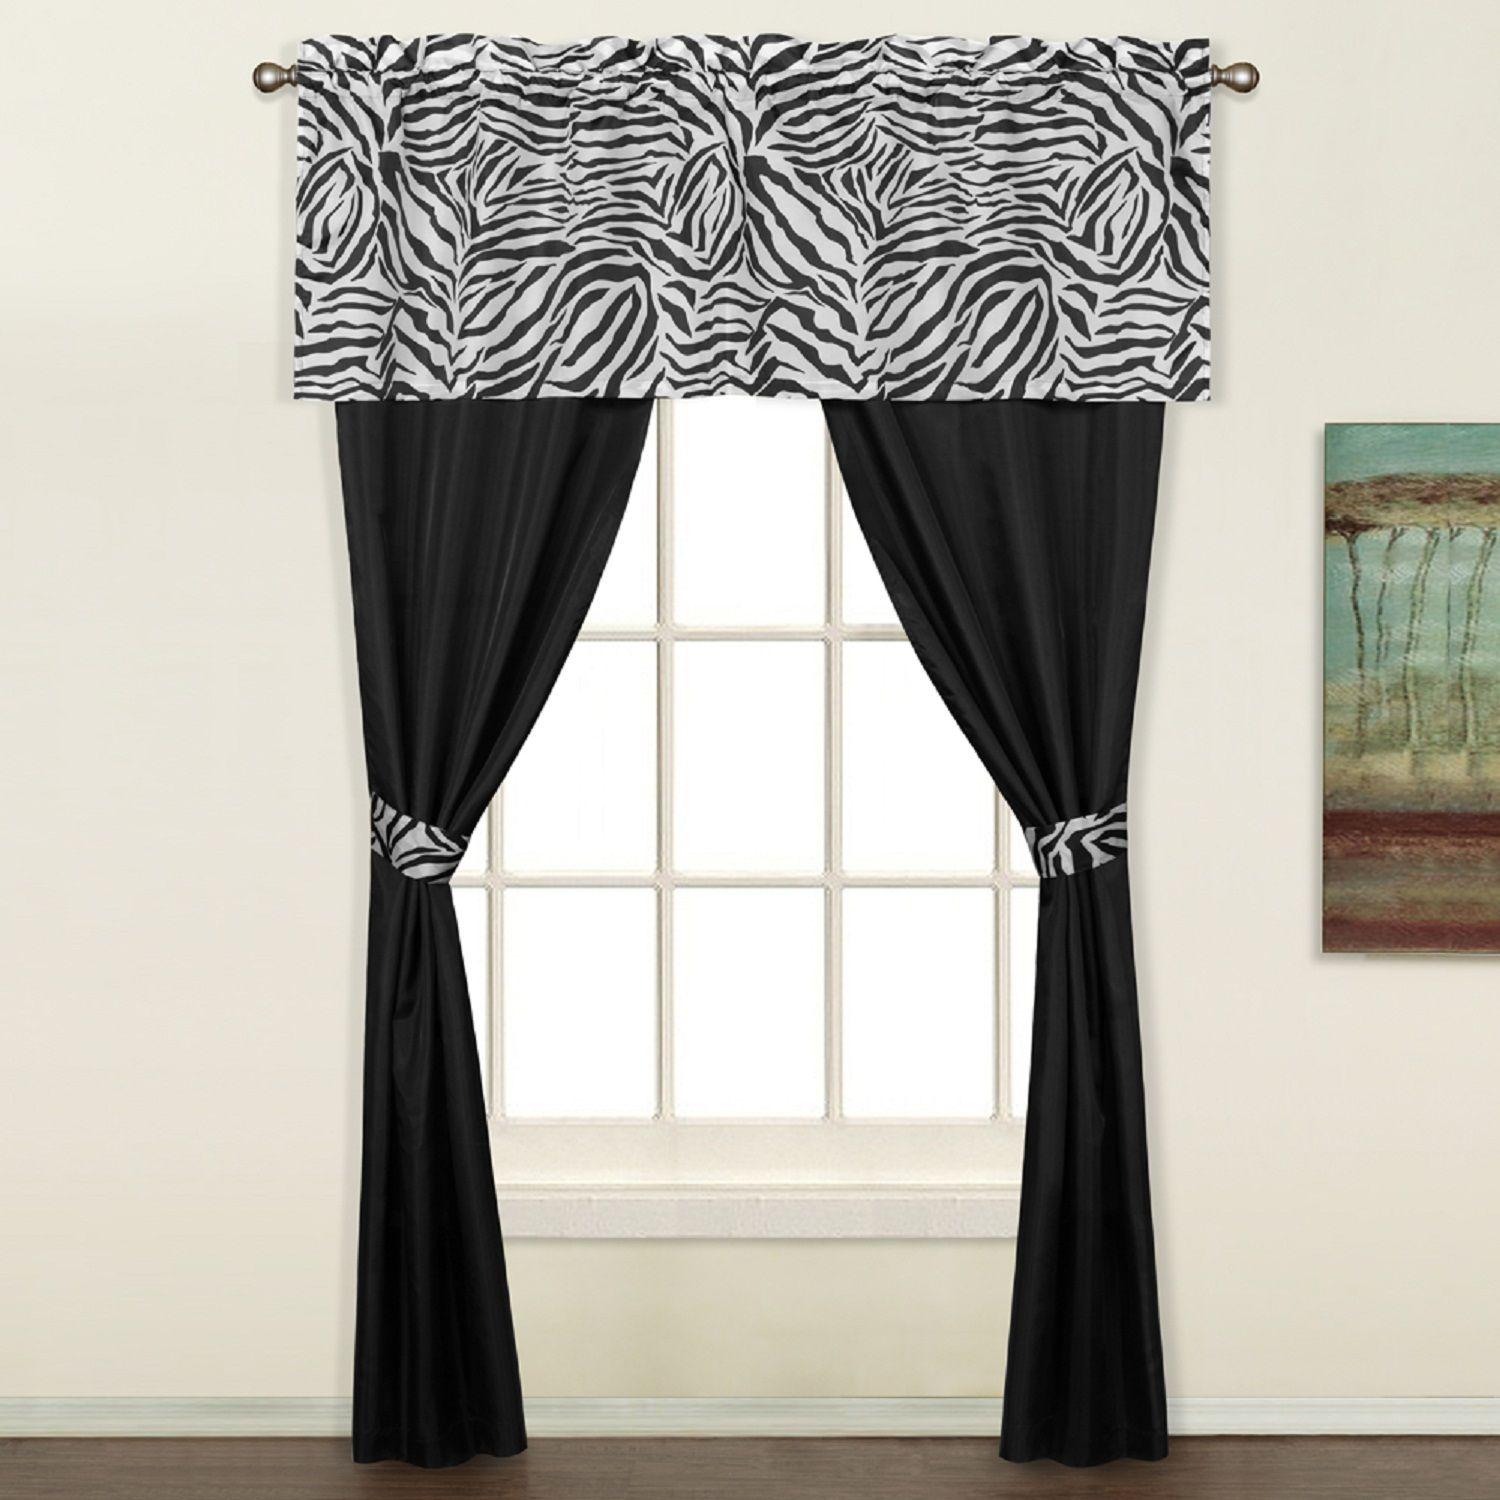 Zebra 5 Piece Decorative Curtain Set By United Curtains Light